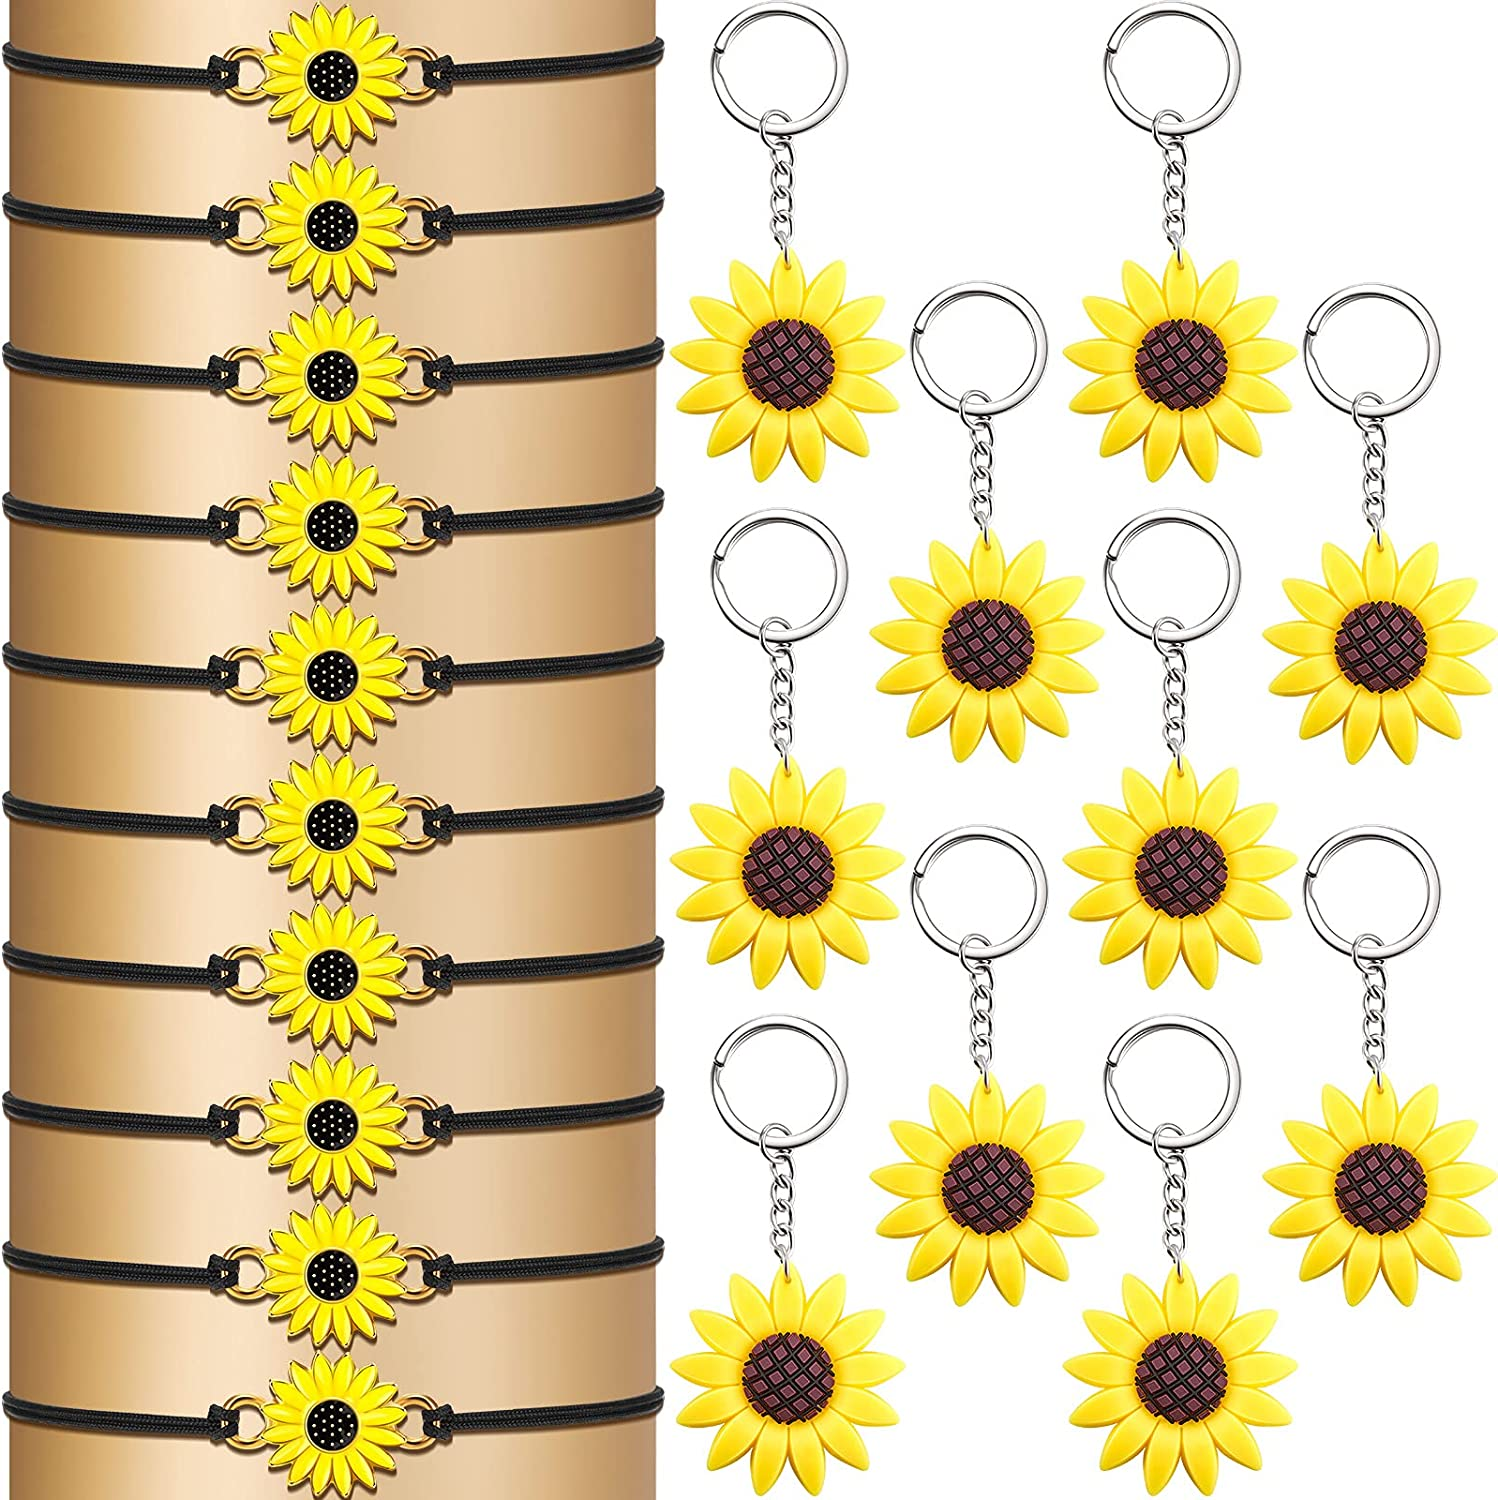 20 Pieces Sunflower Keychains and Bracelets Sunflower Pendant Keychain Adjustable Sunflower Bracelets Backpack Hanging Key Ring Boho Friendship Presents for Women Girls Summer Birthday Party Decor